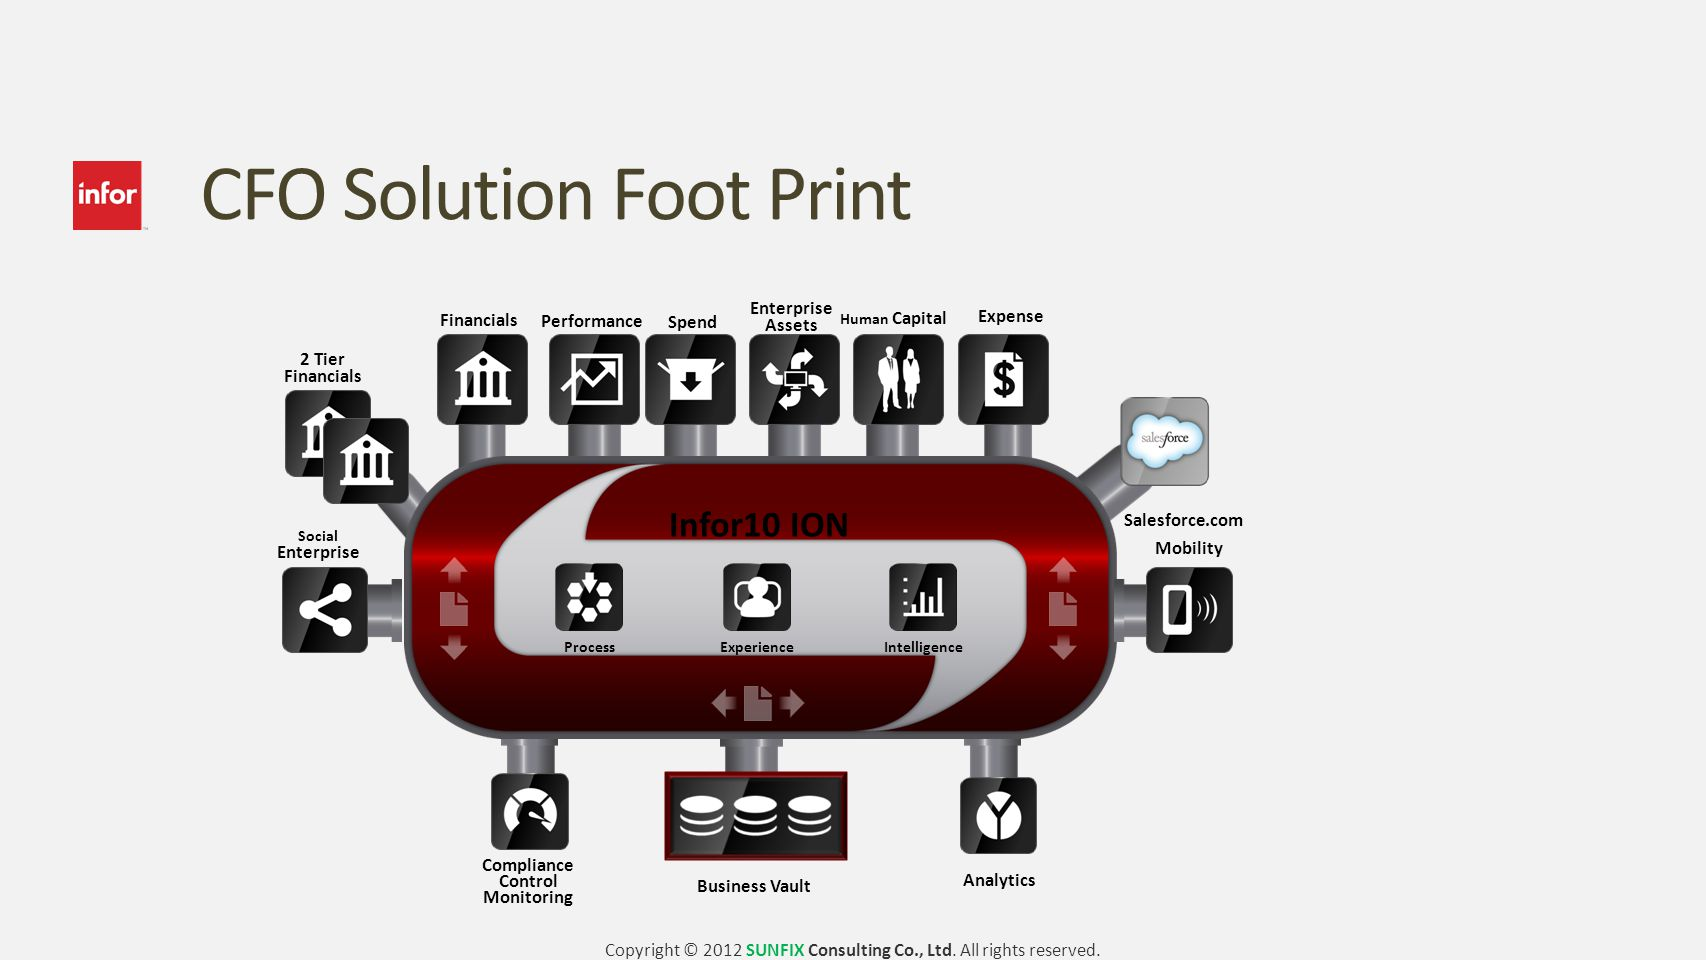 CFO Solution Foot Print Infor10 ION Performance ProcessExperienceIntelligence Spend Human Capital Social Enterprise Mobility Business Vault Financials Expense Enterprise Assets Analytics Compliance Control Monitoring 2 Tier Financials Salesforce.com Copyright © 2012 SUNFIX Consulting Co., Ltd.